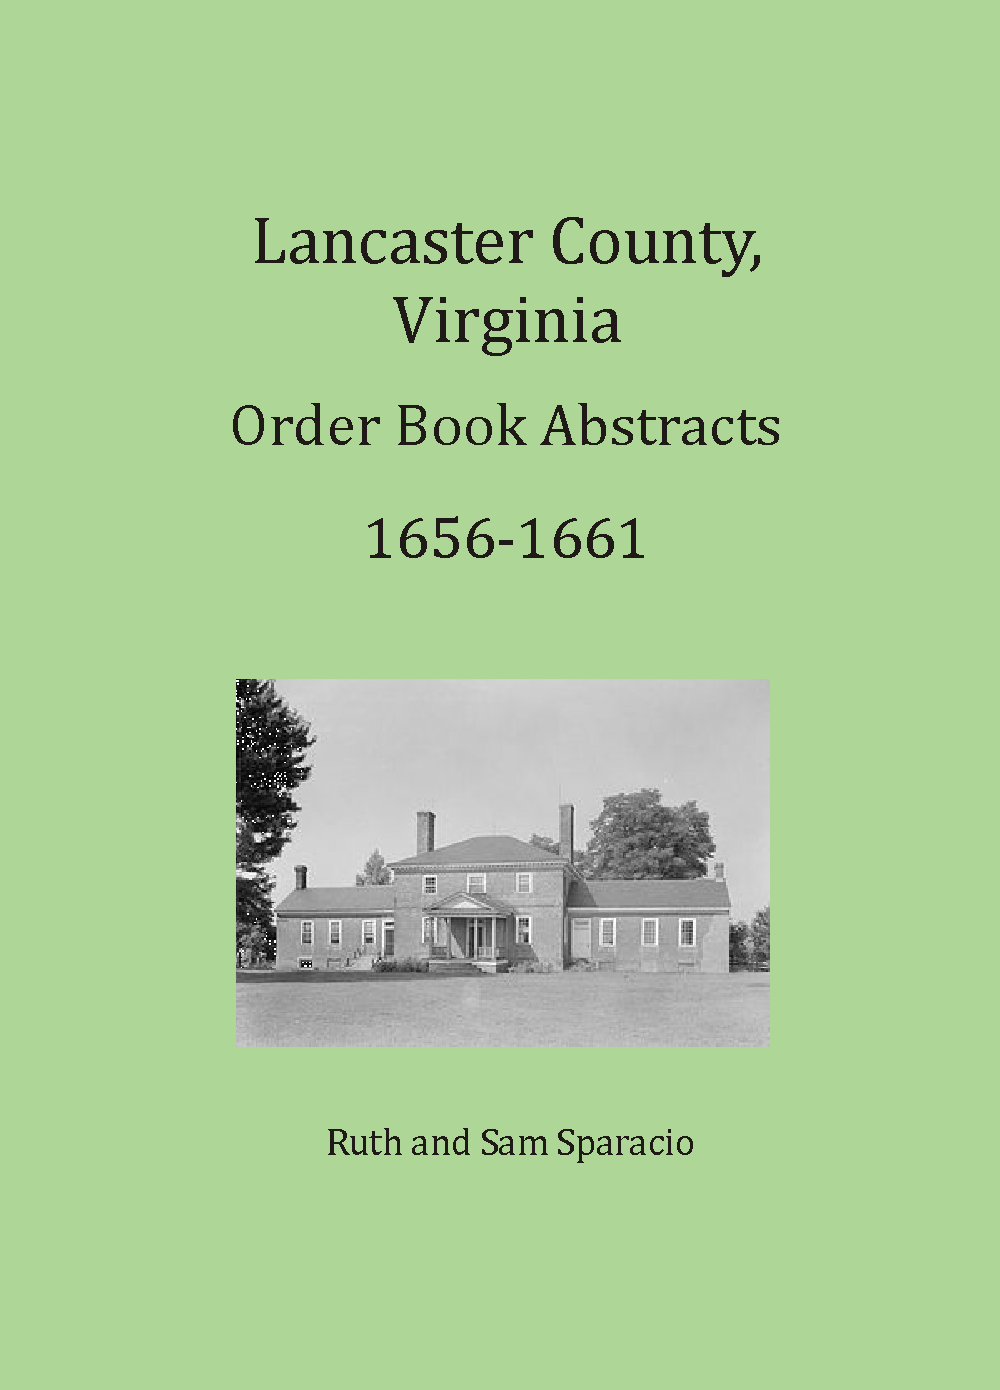 Lancaster County, Virginia Order Book Abstracts, 1656-1661